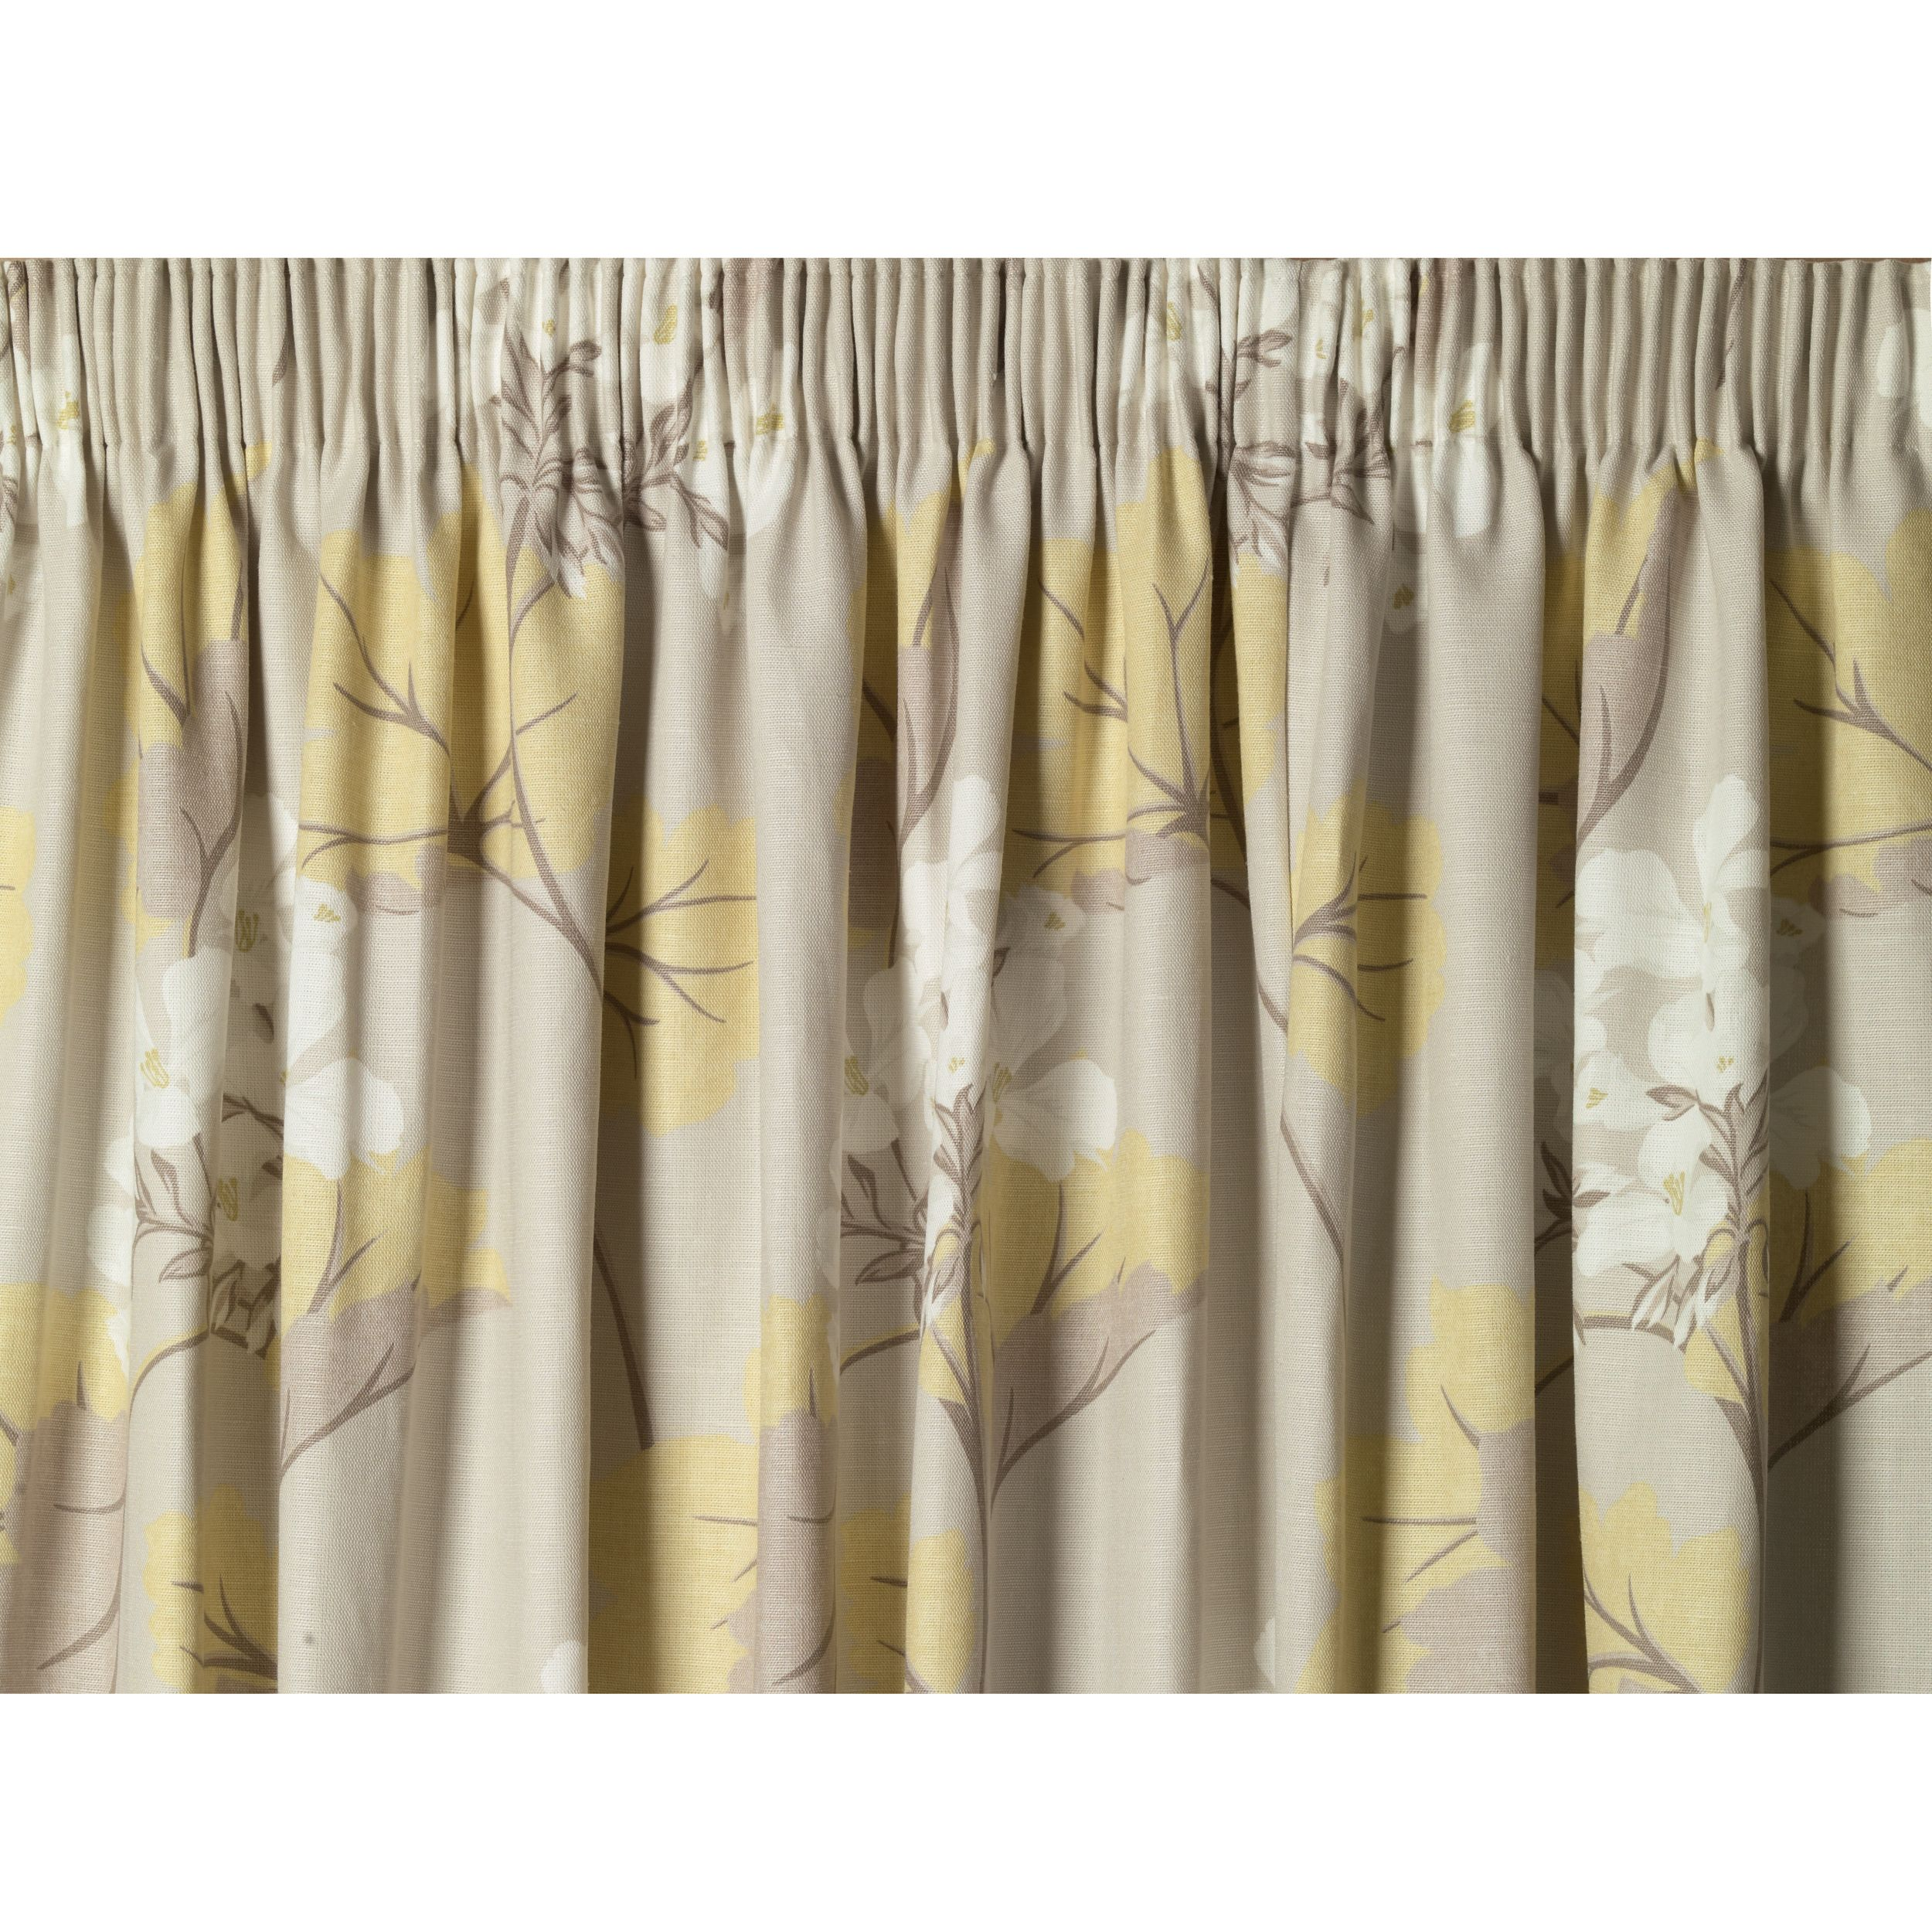 ordered these laura ashley curtains for my living room. Black Bedroom Furniture Sets. Home Design Ideas